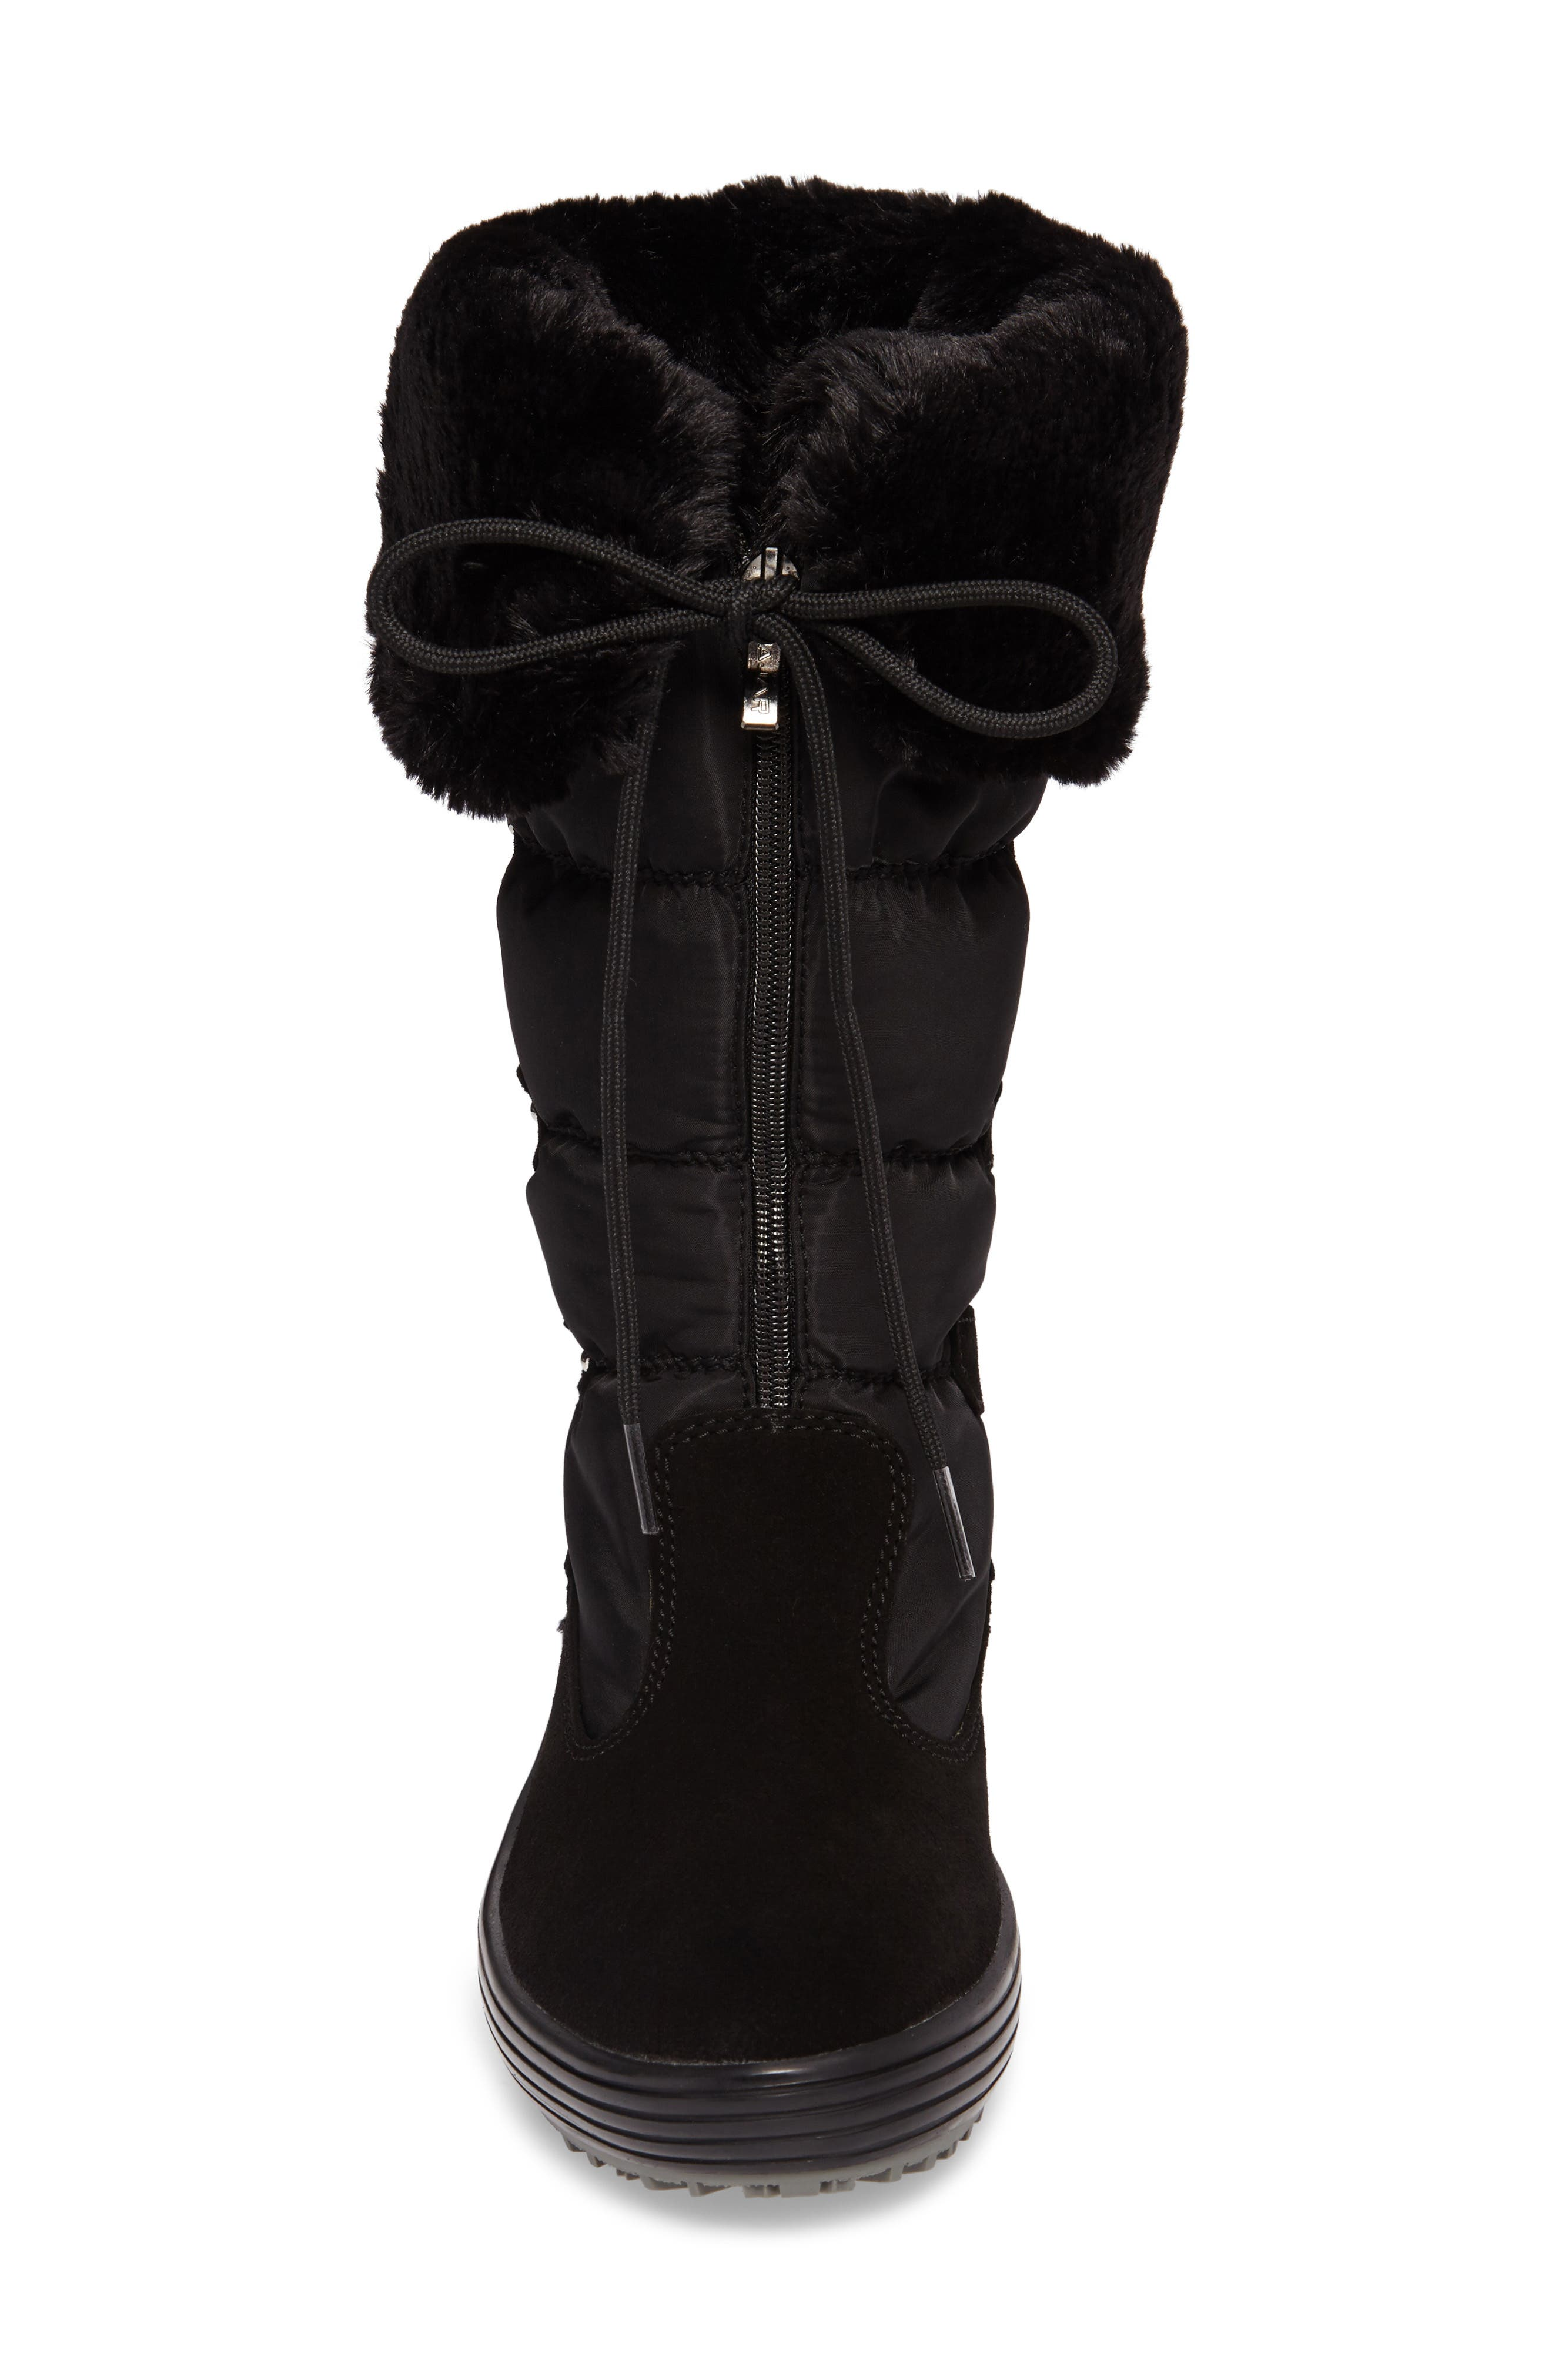 Mia Waterproof Boot with Faux Fur Trim,                             Alternate thumbnail 4, color,                             Black Suede